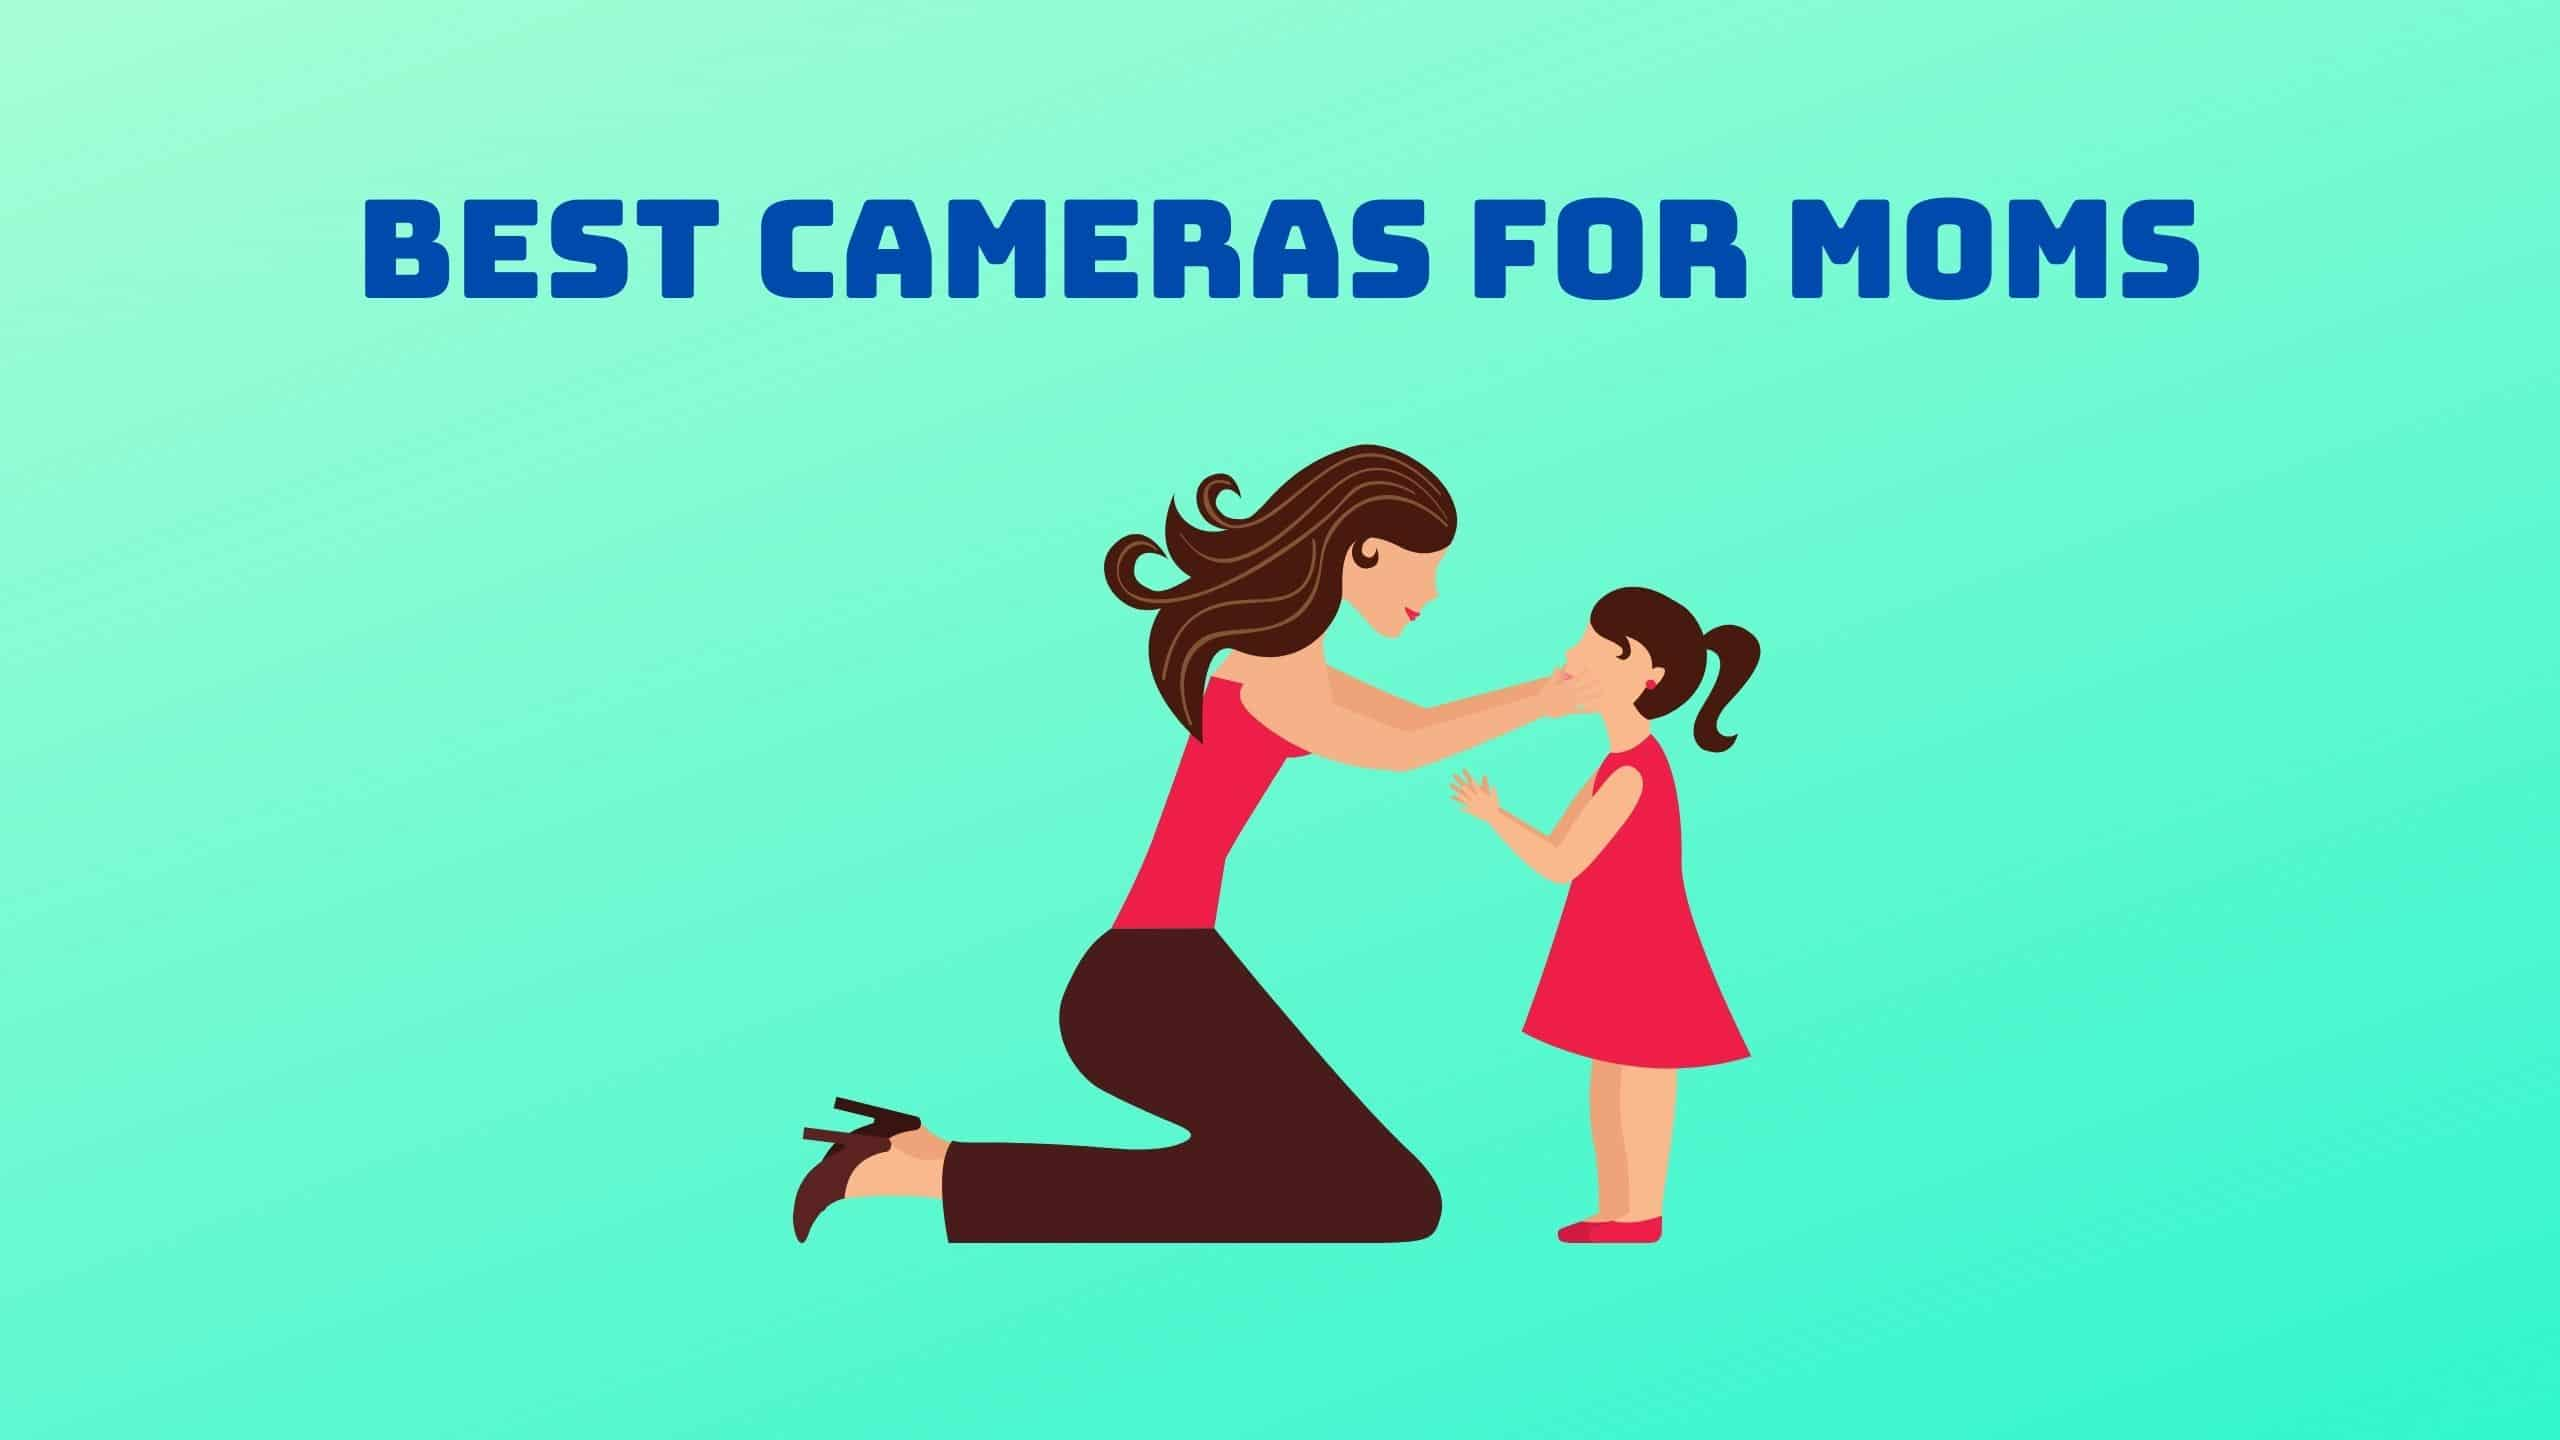 Best Cameras for Moms (1)